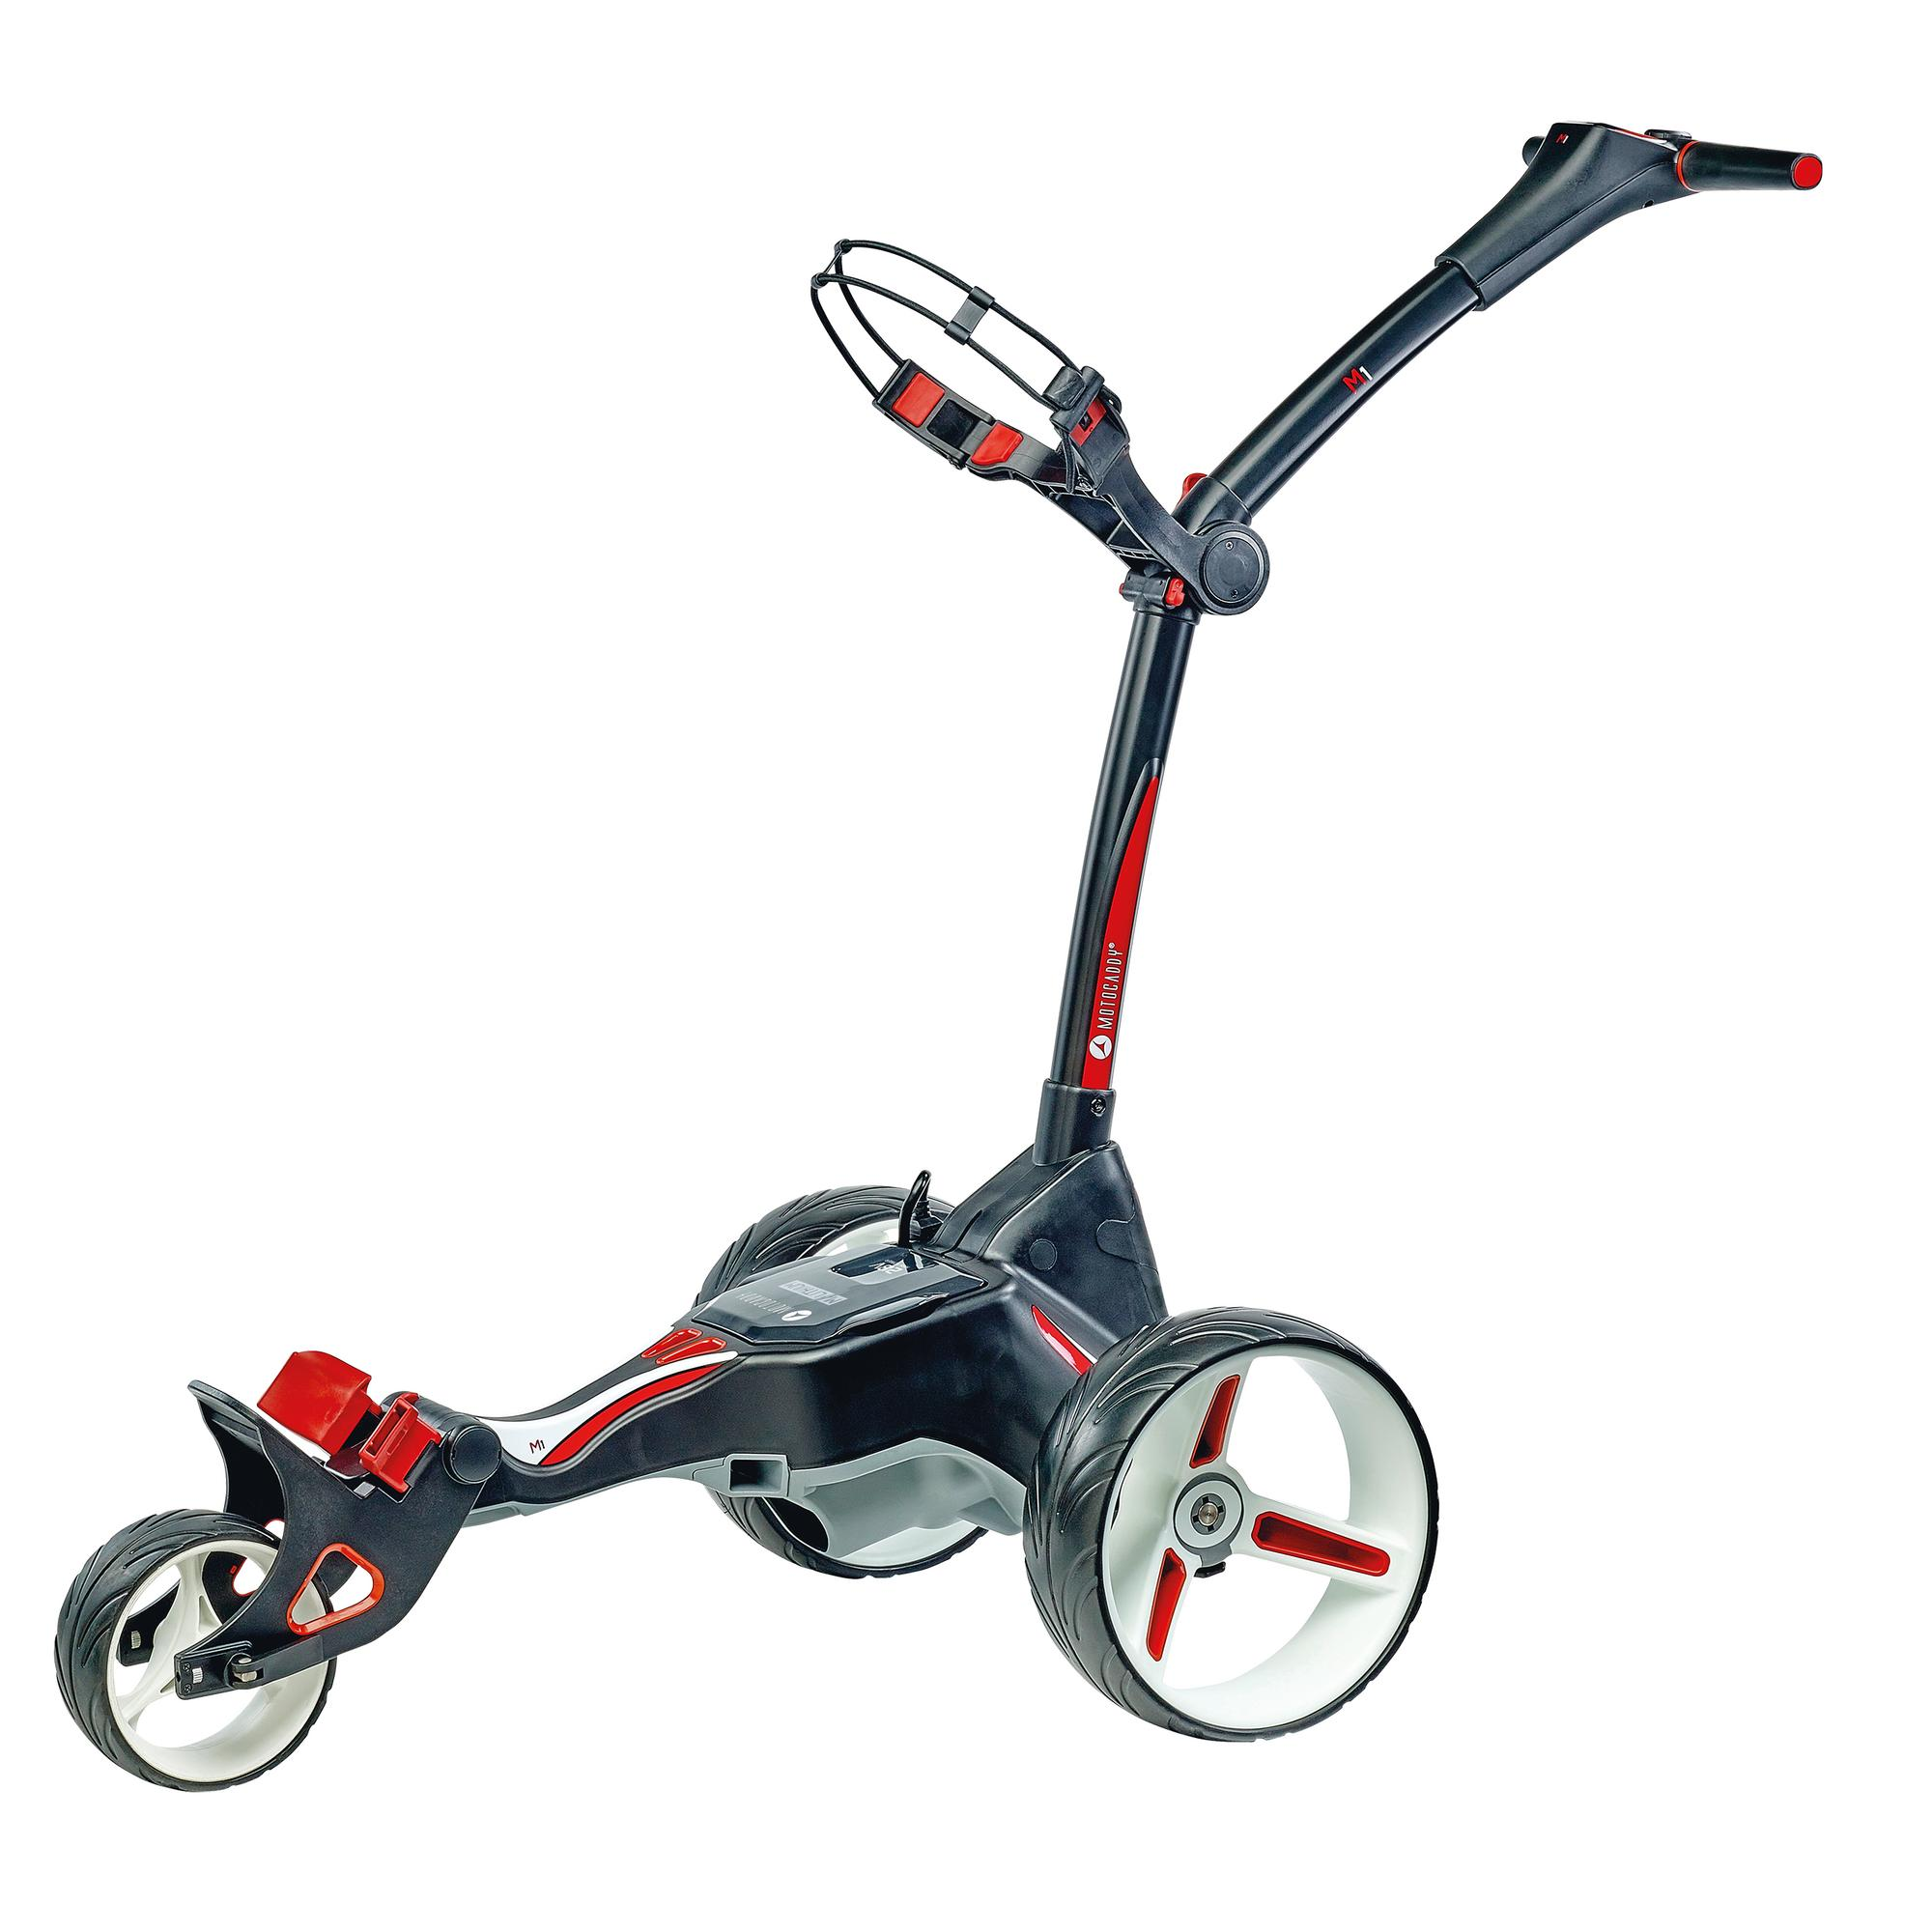 M1 Pro Lithium Electric Cart